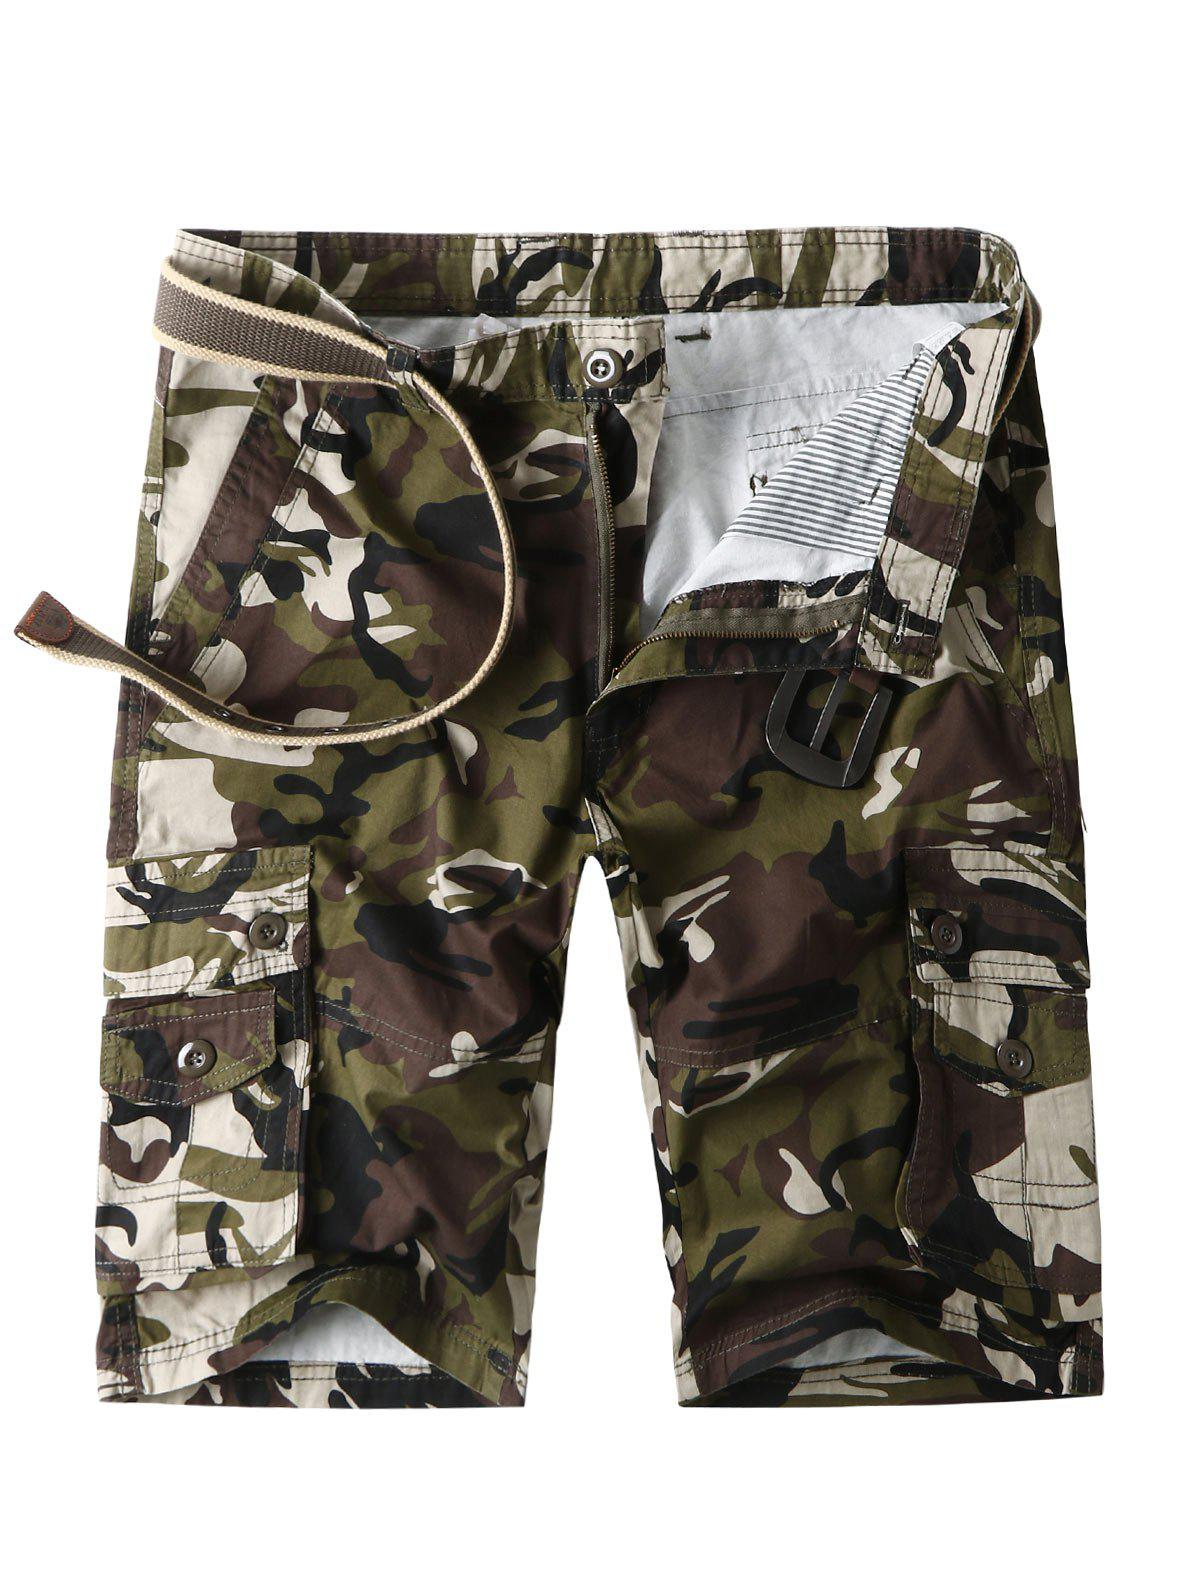 Shop Camouflage Cargo Shorts with Multi Pockets